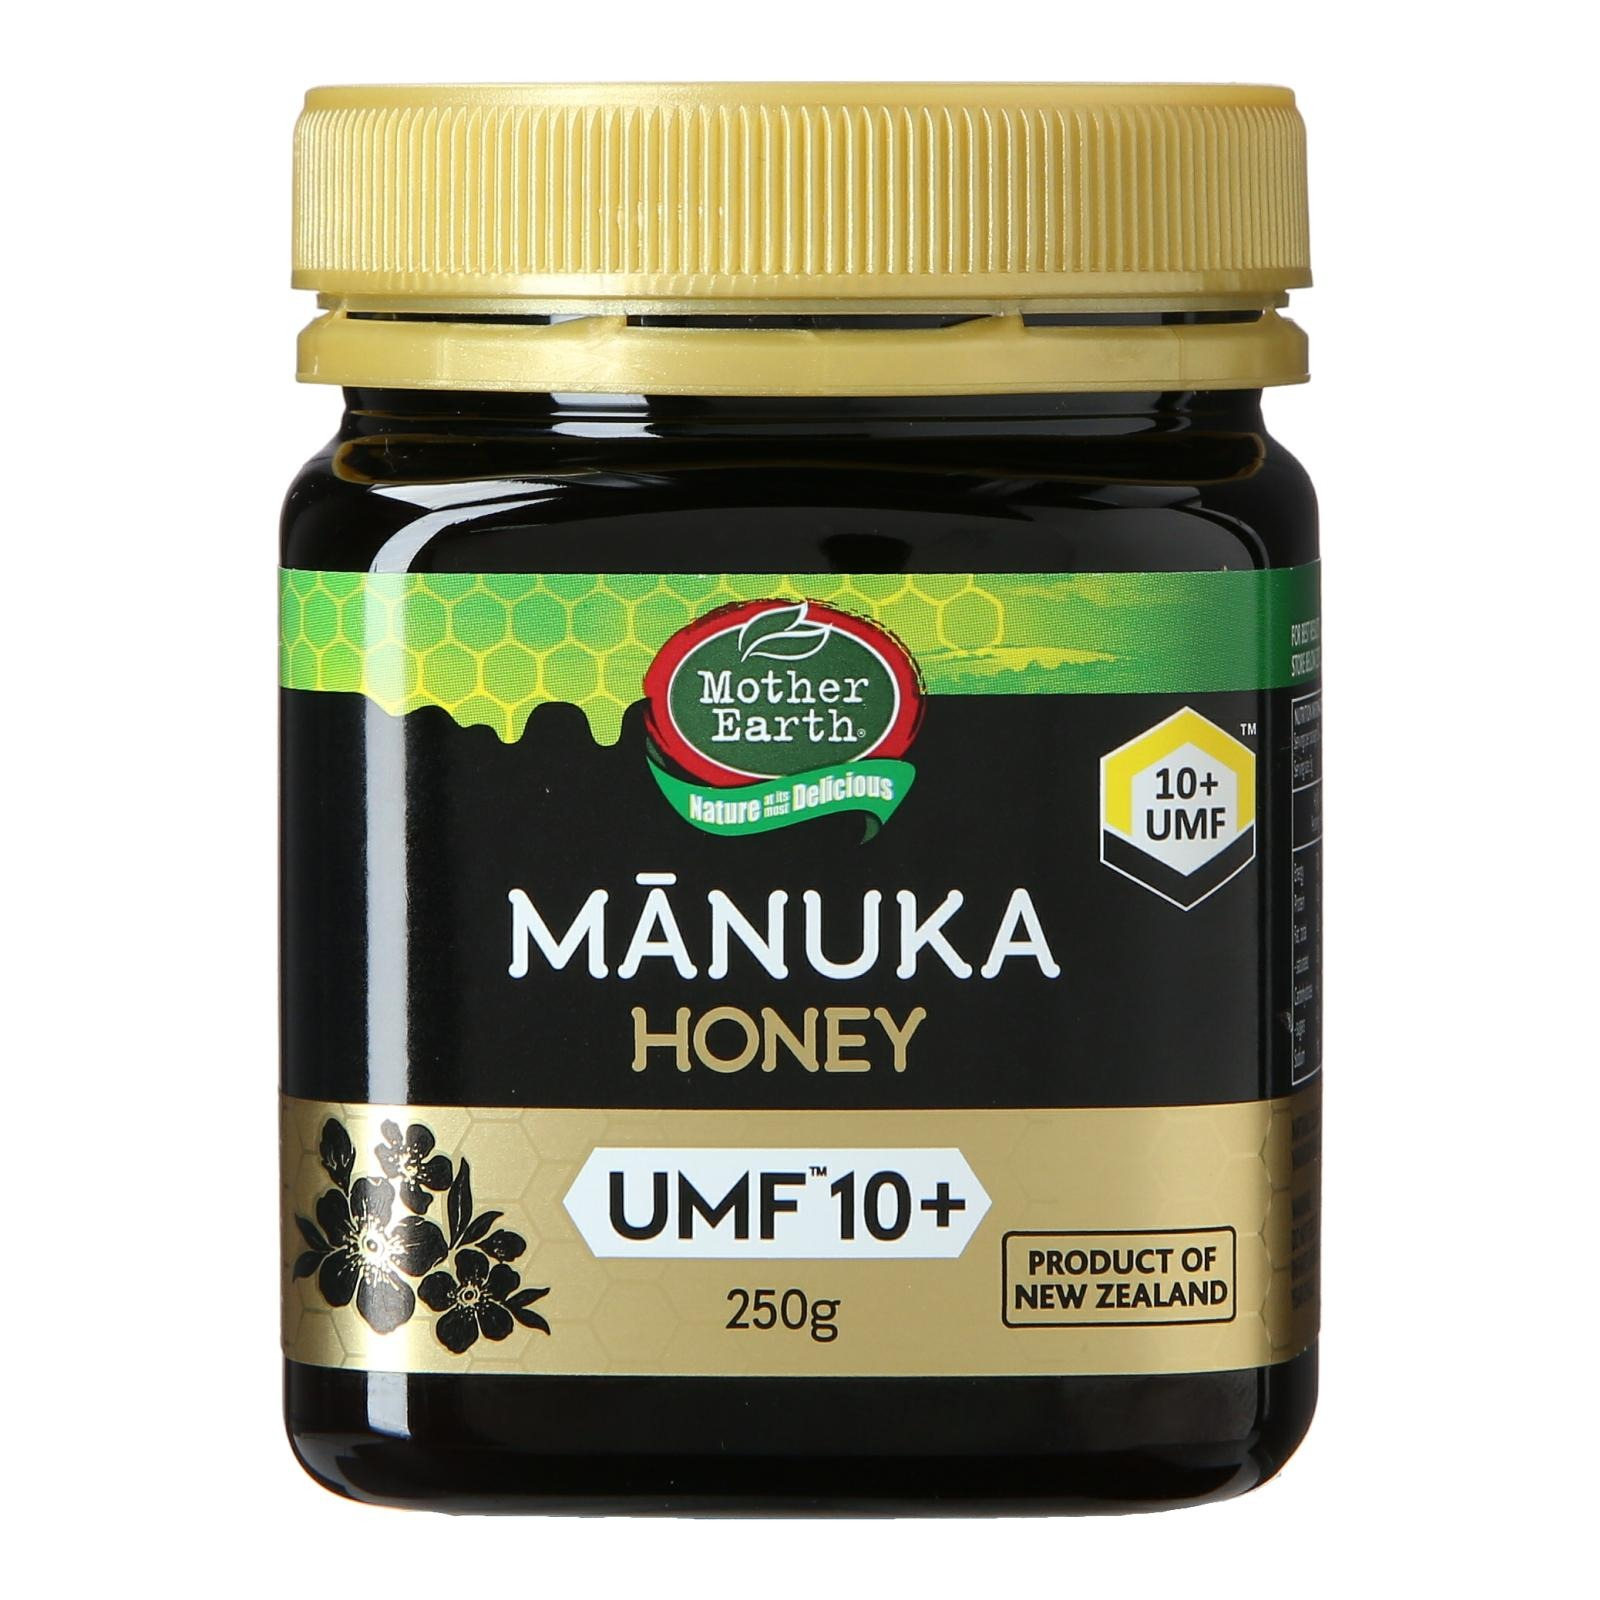 Mother Earth Manuka Honey from New Zealand UMF10+